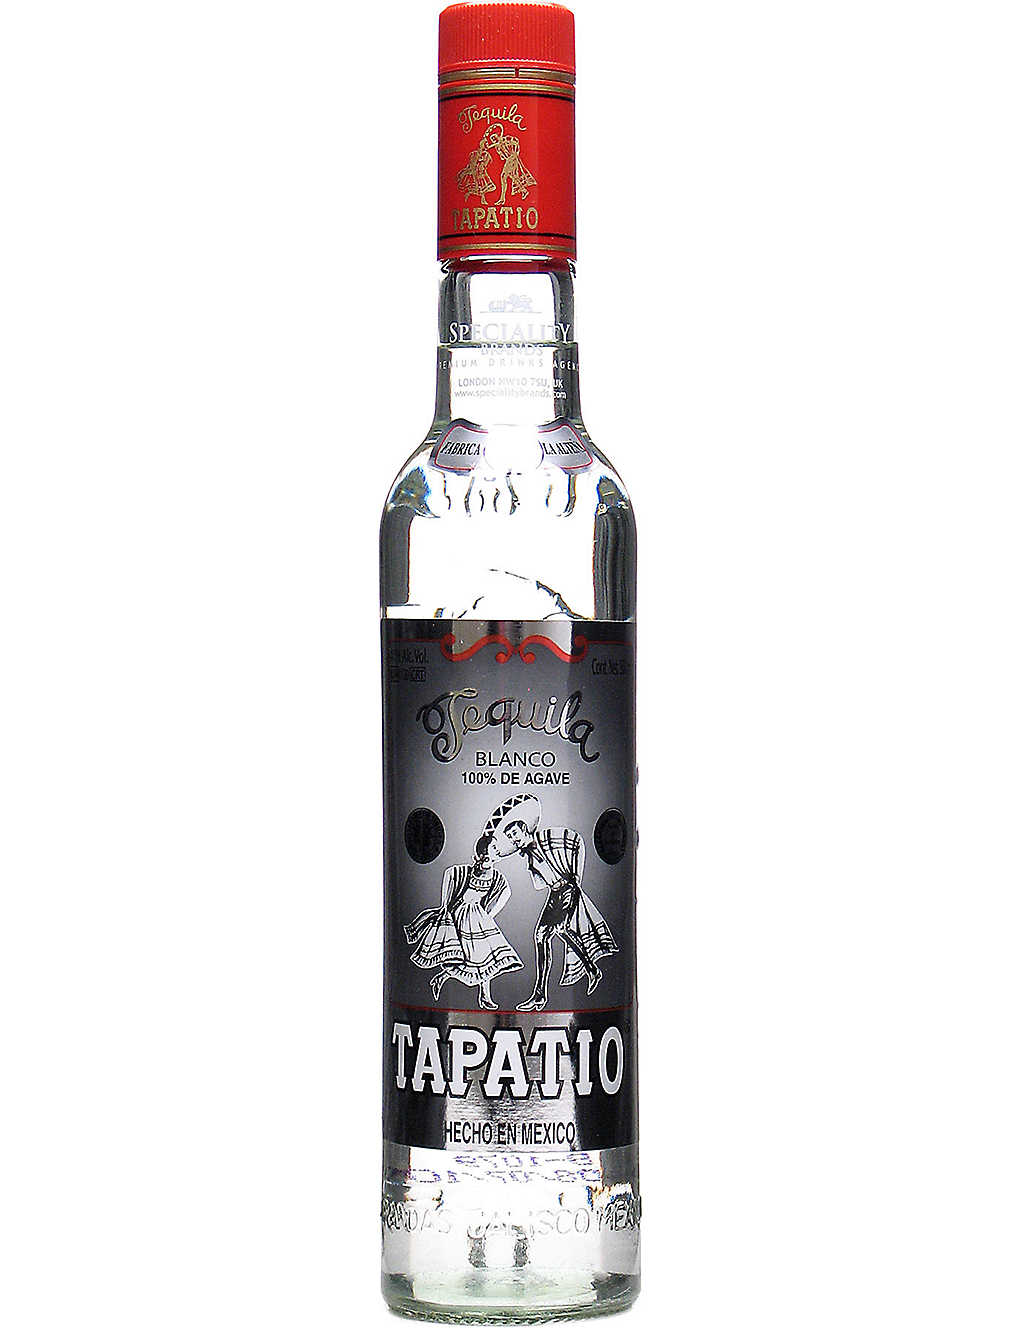 TEQUILA: Tapatio Blanco tequila 500ml